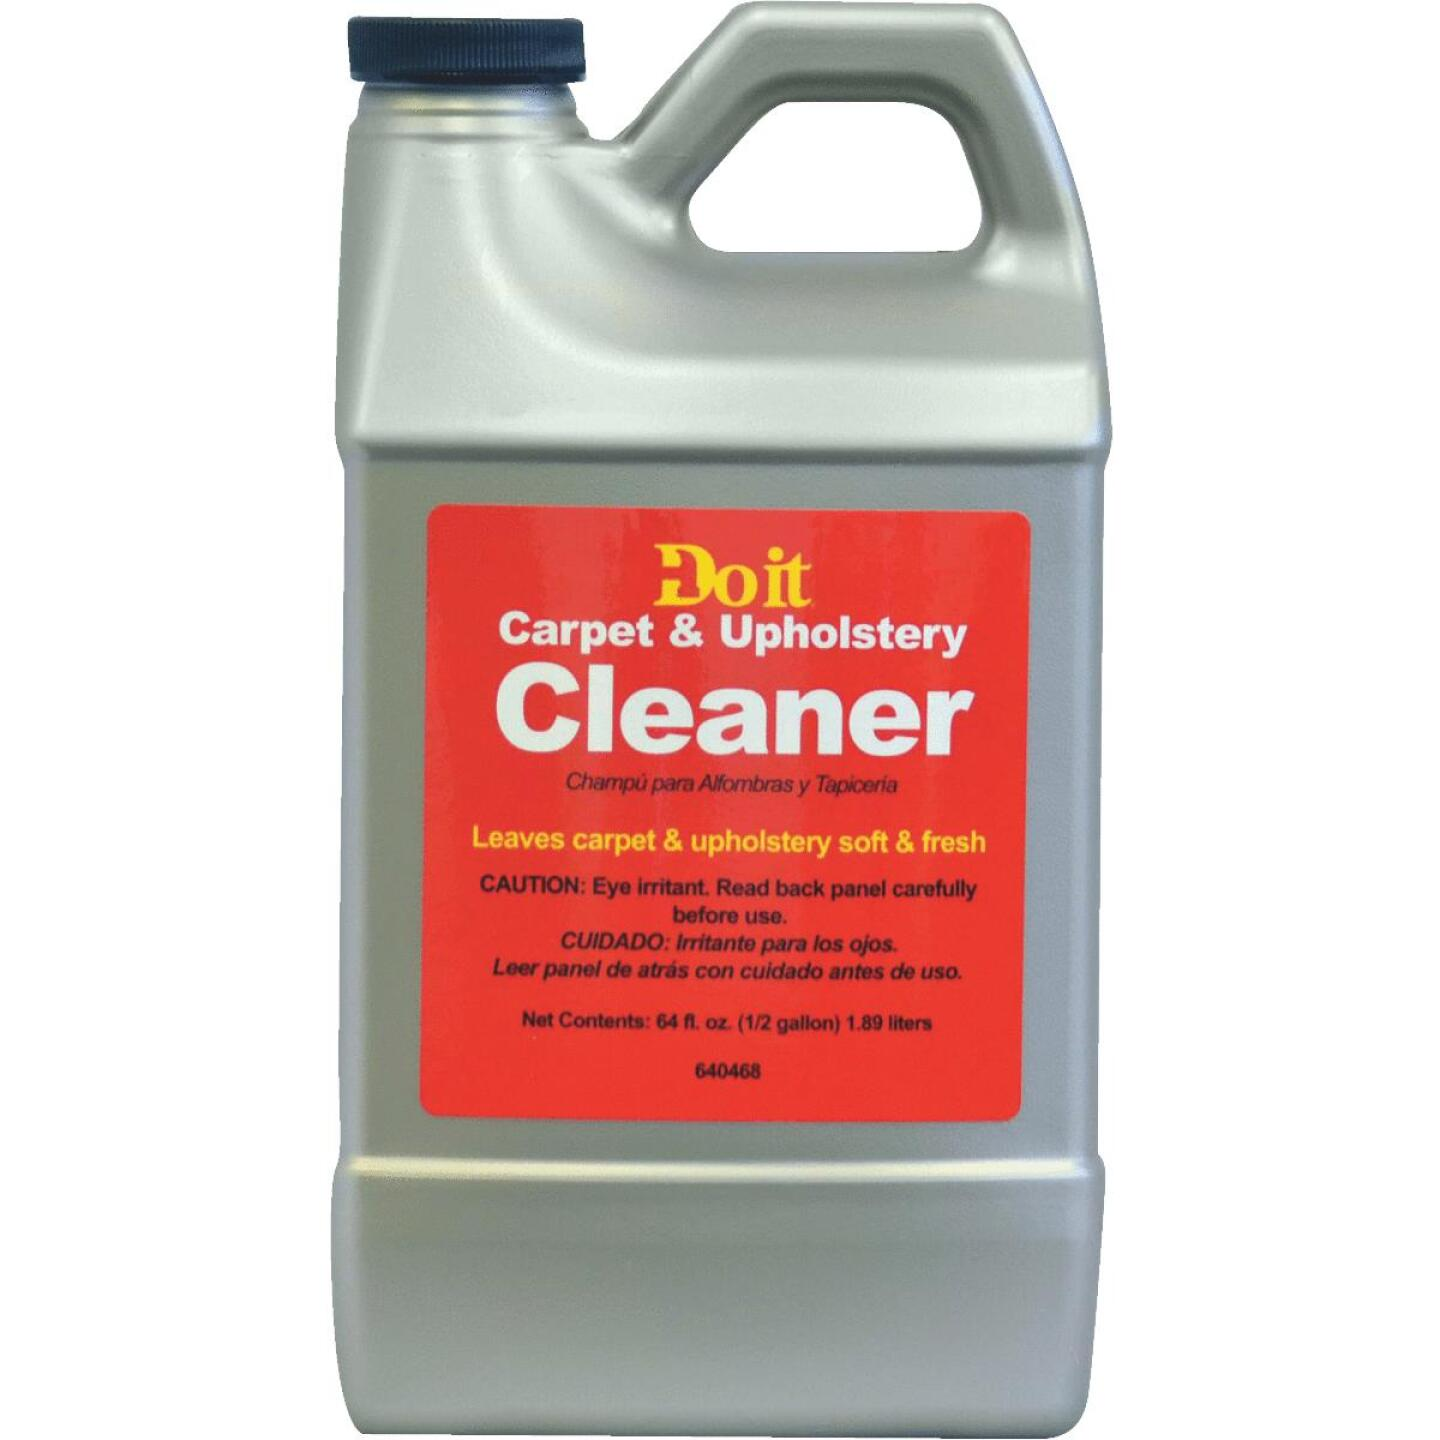 Do it 1/2 Gal. Carpet and Upholstery Cleaner Image 1